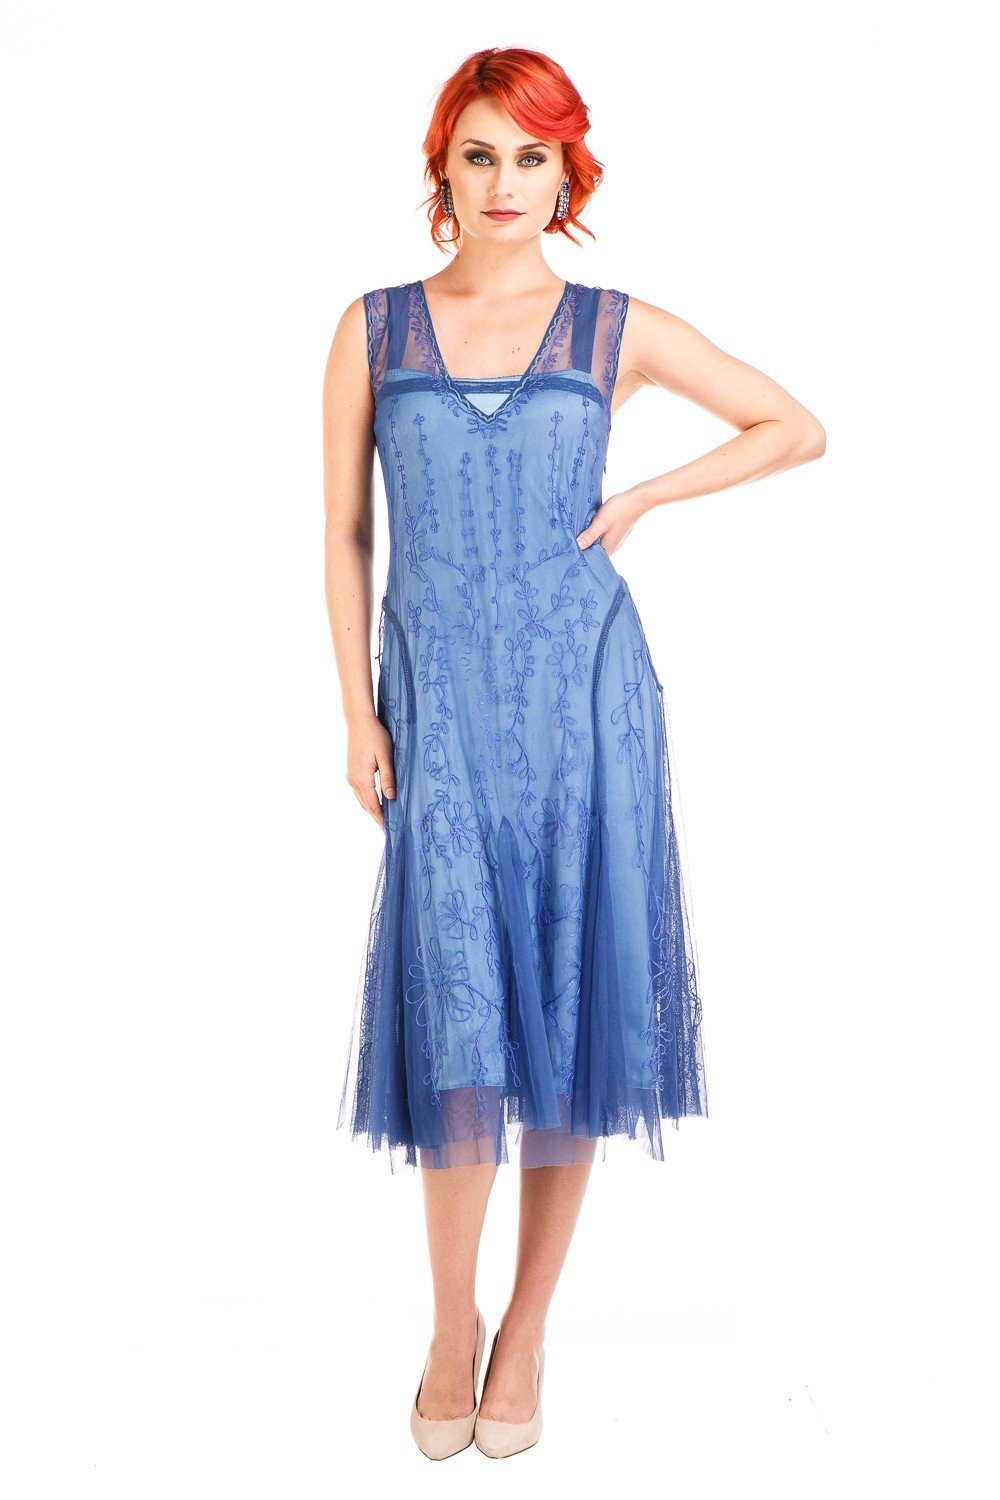 1920s Style Dresses, 20s Dresses Jackie 1920s Flapper Style Dress in Periwinkle by Nataya $208.00 AT vintagedancer.com